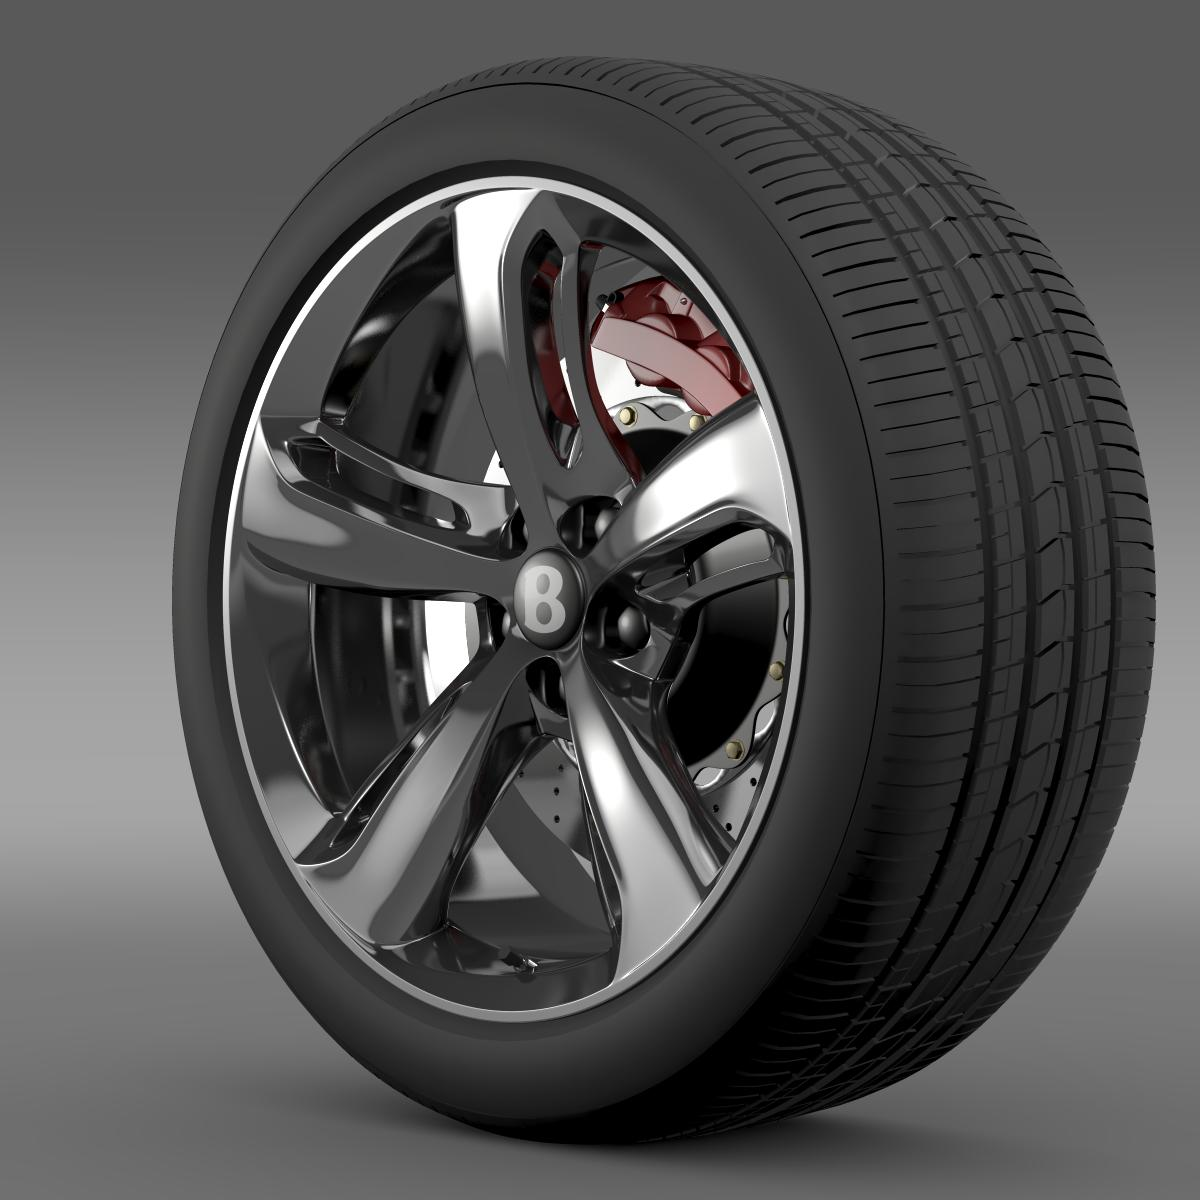 bentley continental gt speed 2015 wheel 3d model 3ds max fbx c4d lwo ma mb hrc xsi obj 210579